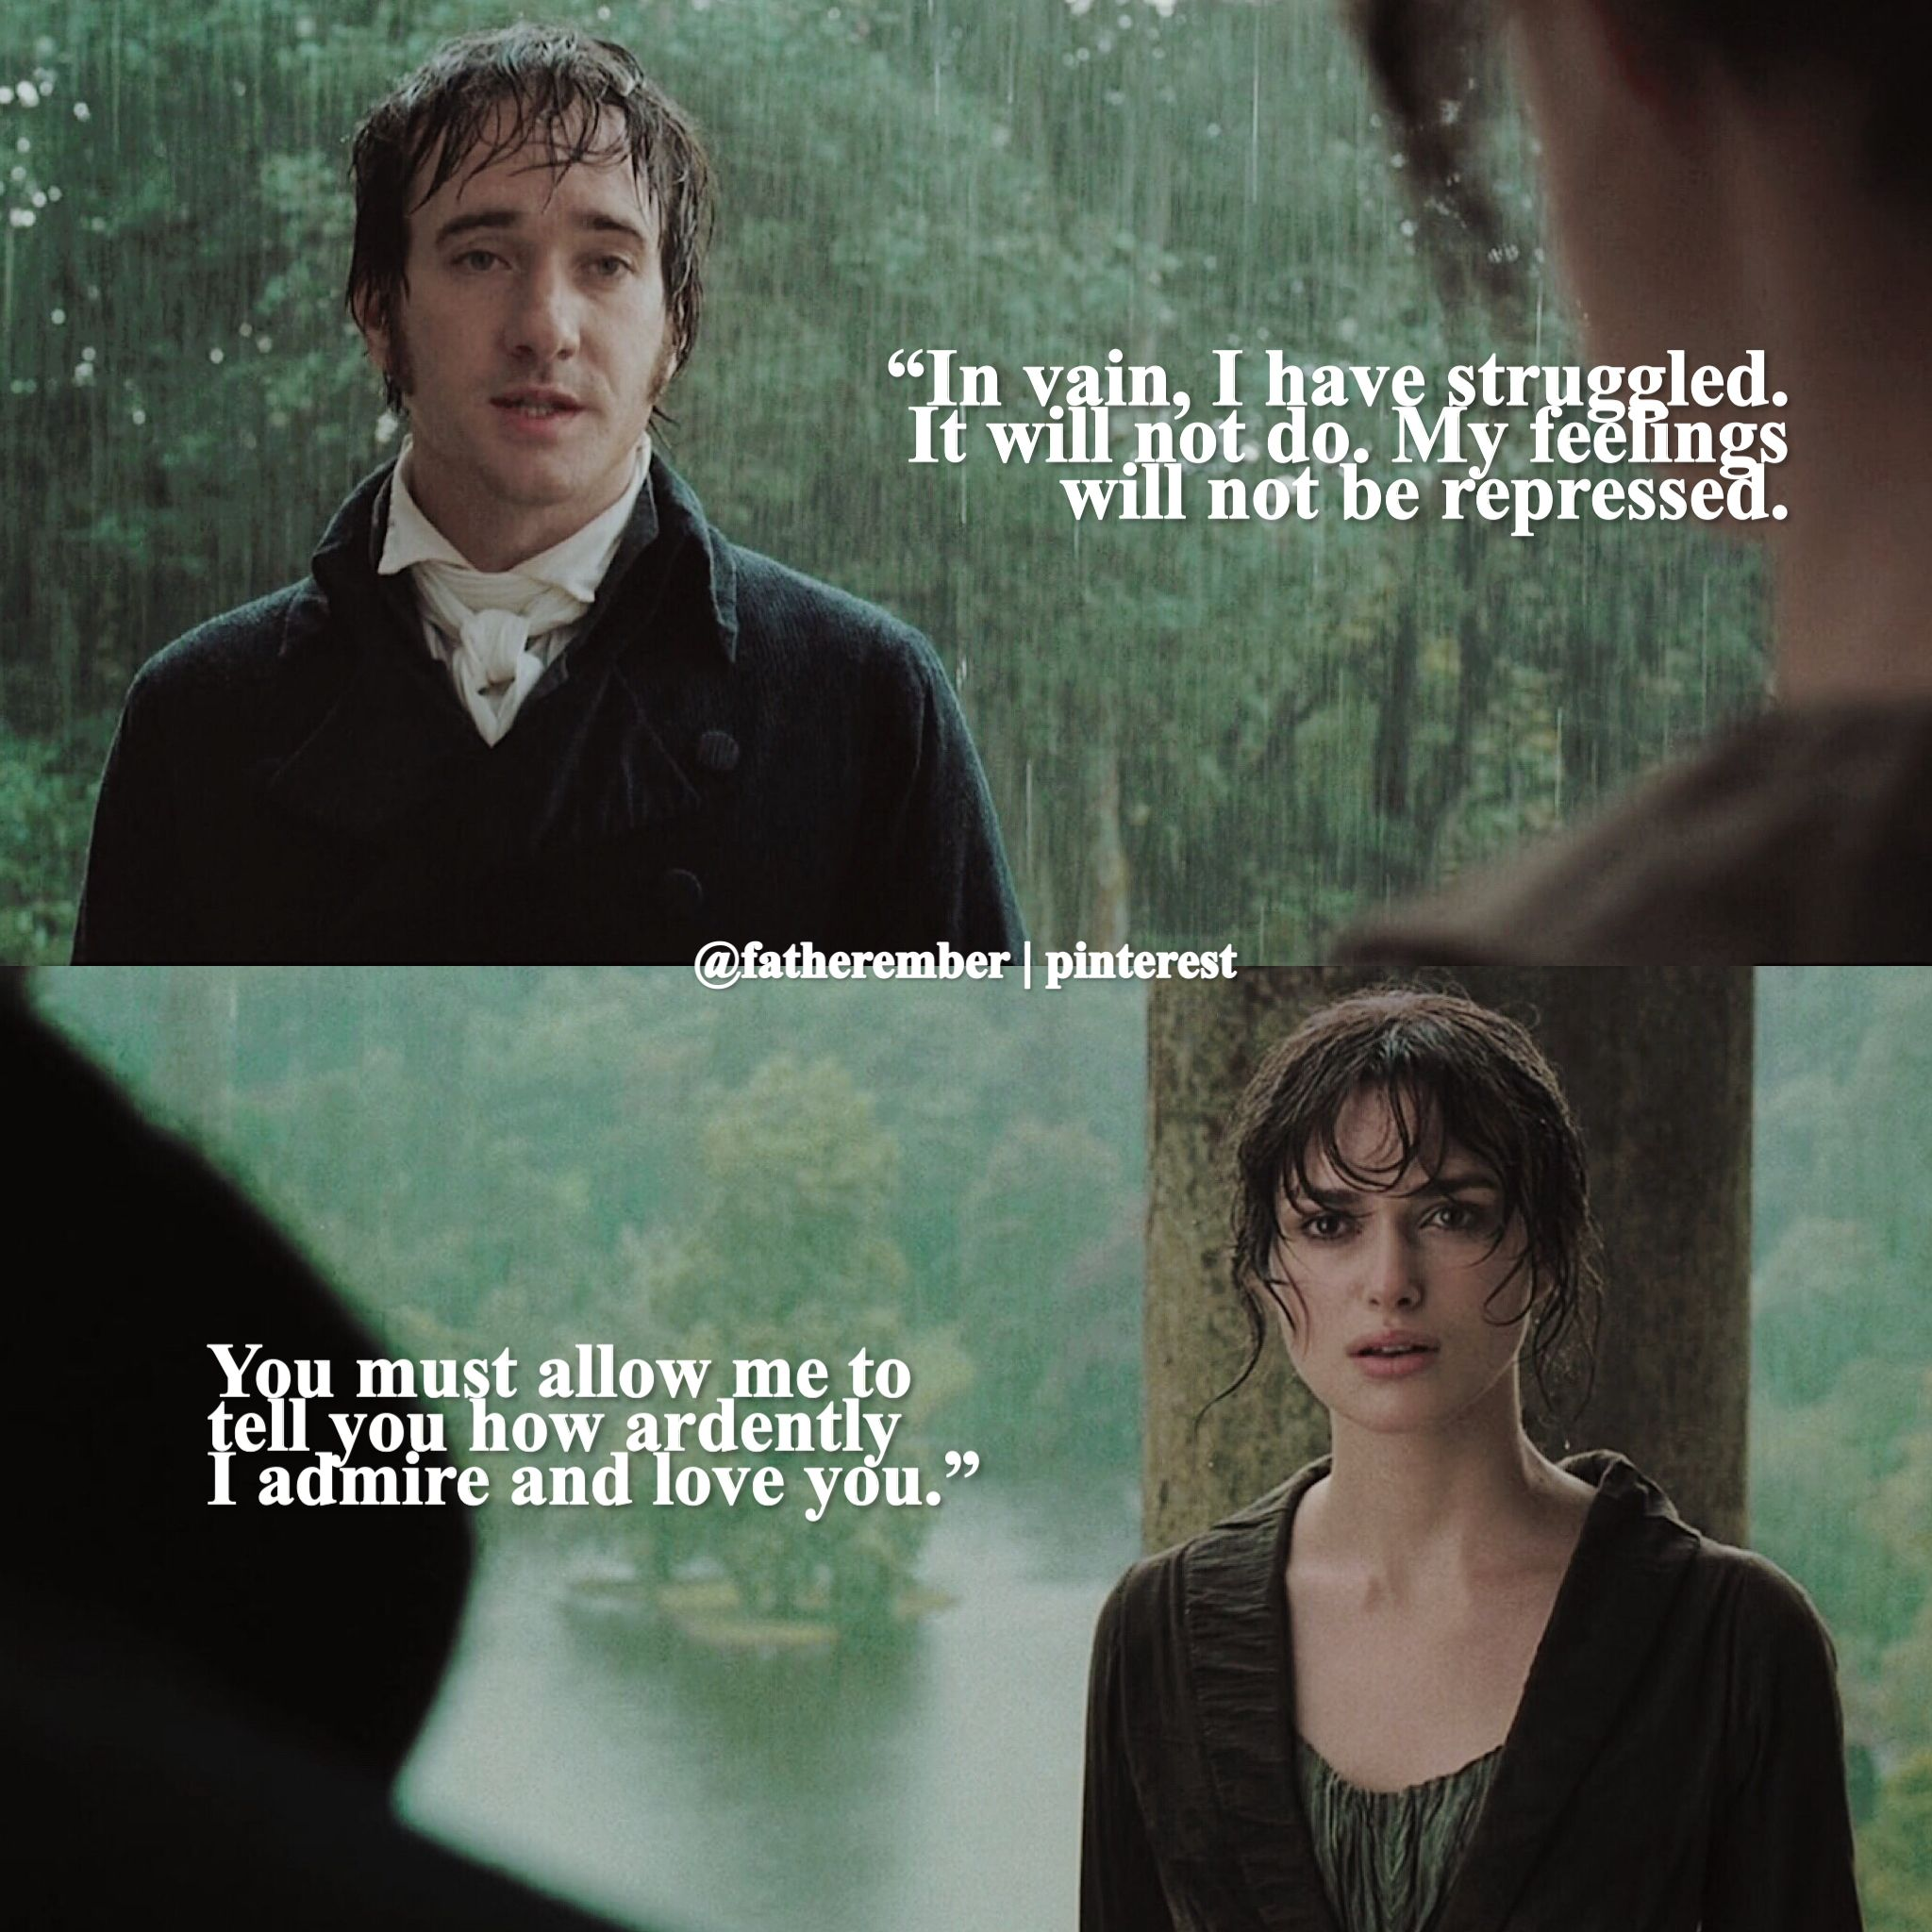 """In vain, I have struggled. It will not do. My feelings will not be repressed. You must allow me to tell you how ardently I admire and love you."" — Mr. Darcy to Elizabeth Bennet (Pride and Prejudice 2005) #prideandprejudice #mrdarcy #elizabethbennet #mrbingley #janebennet #janeausten #edit #quote #prideandprejudice"